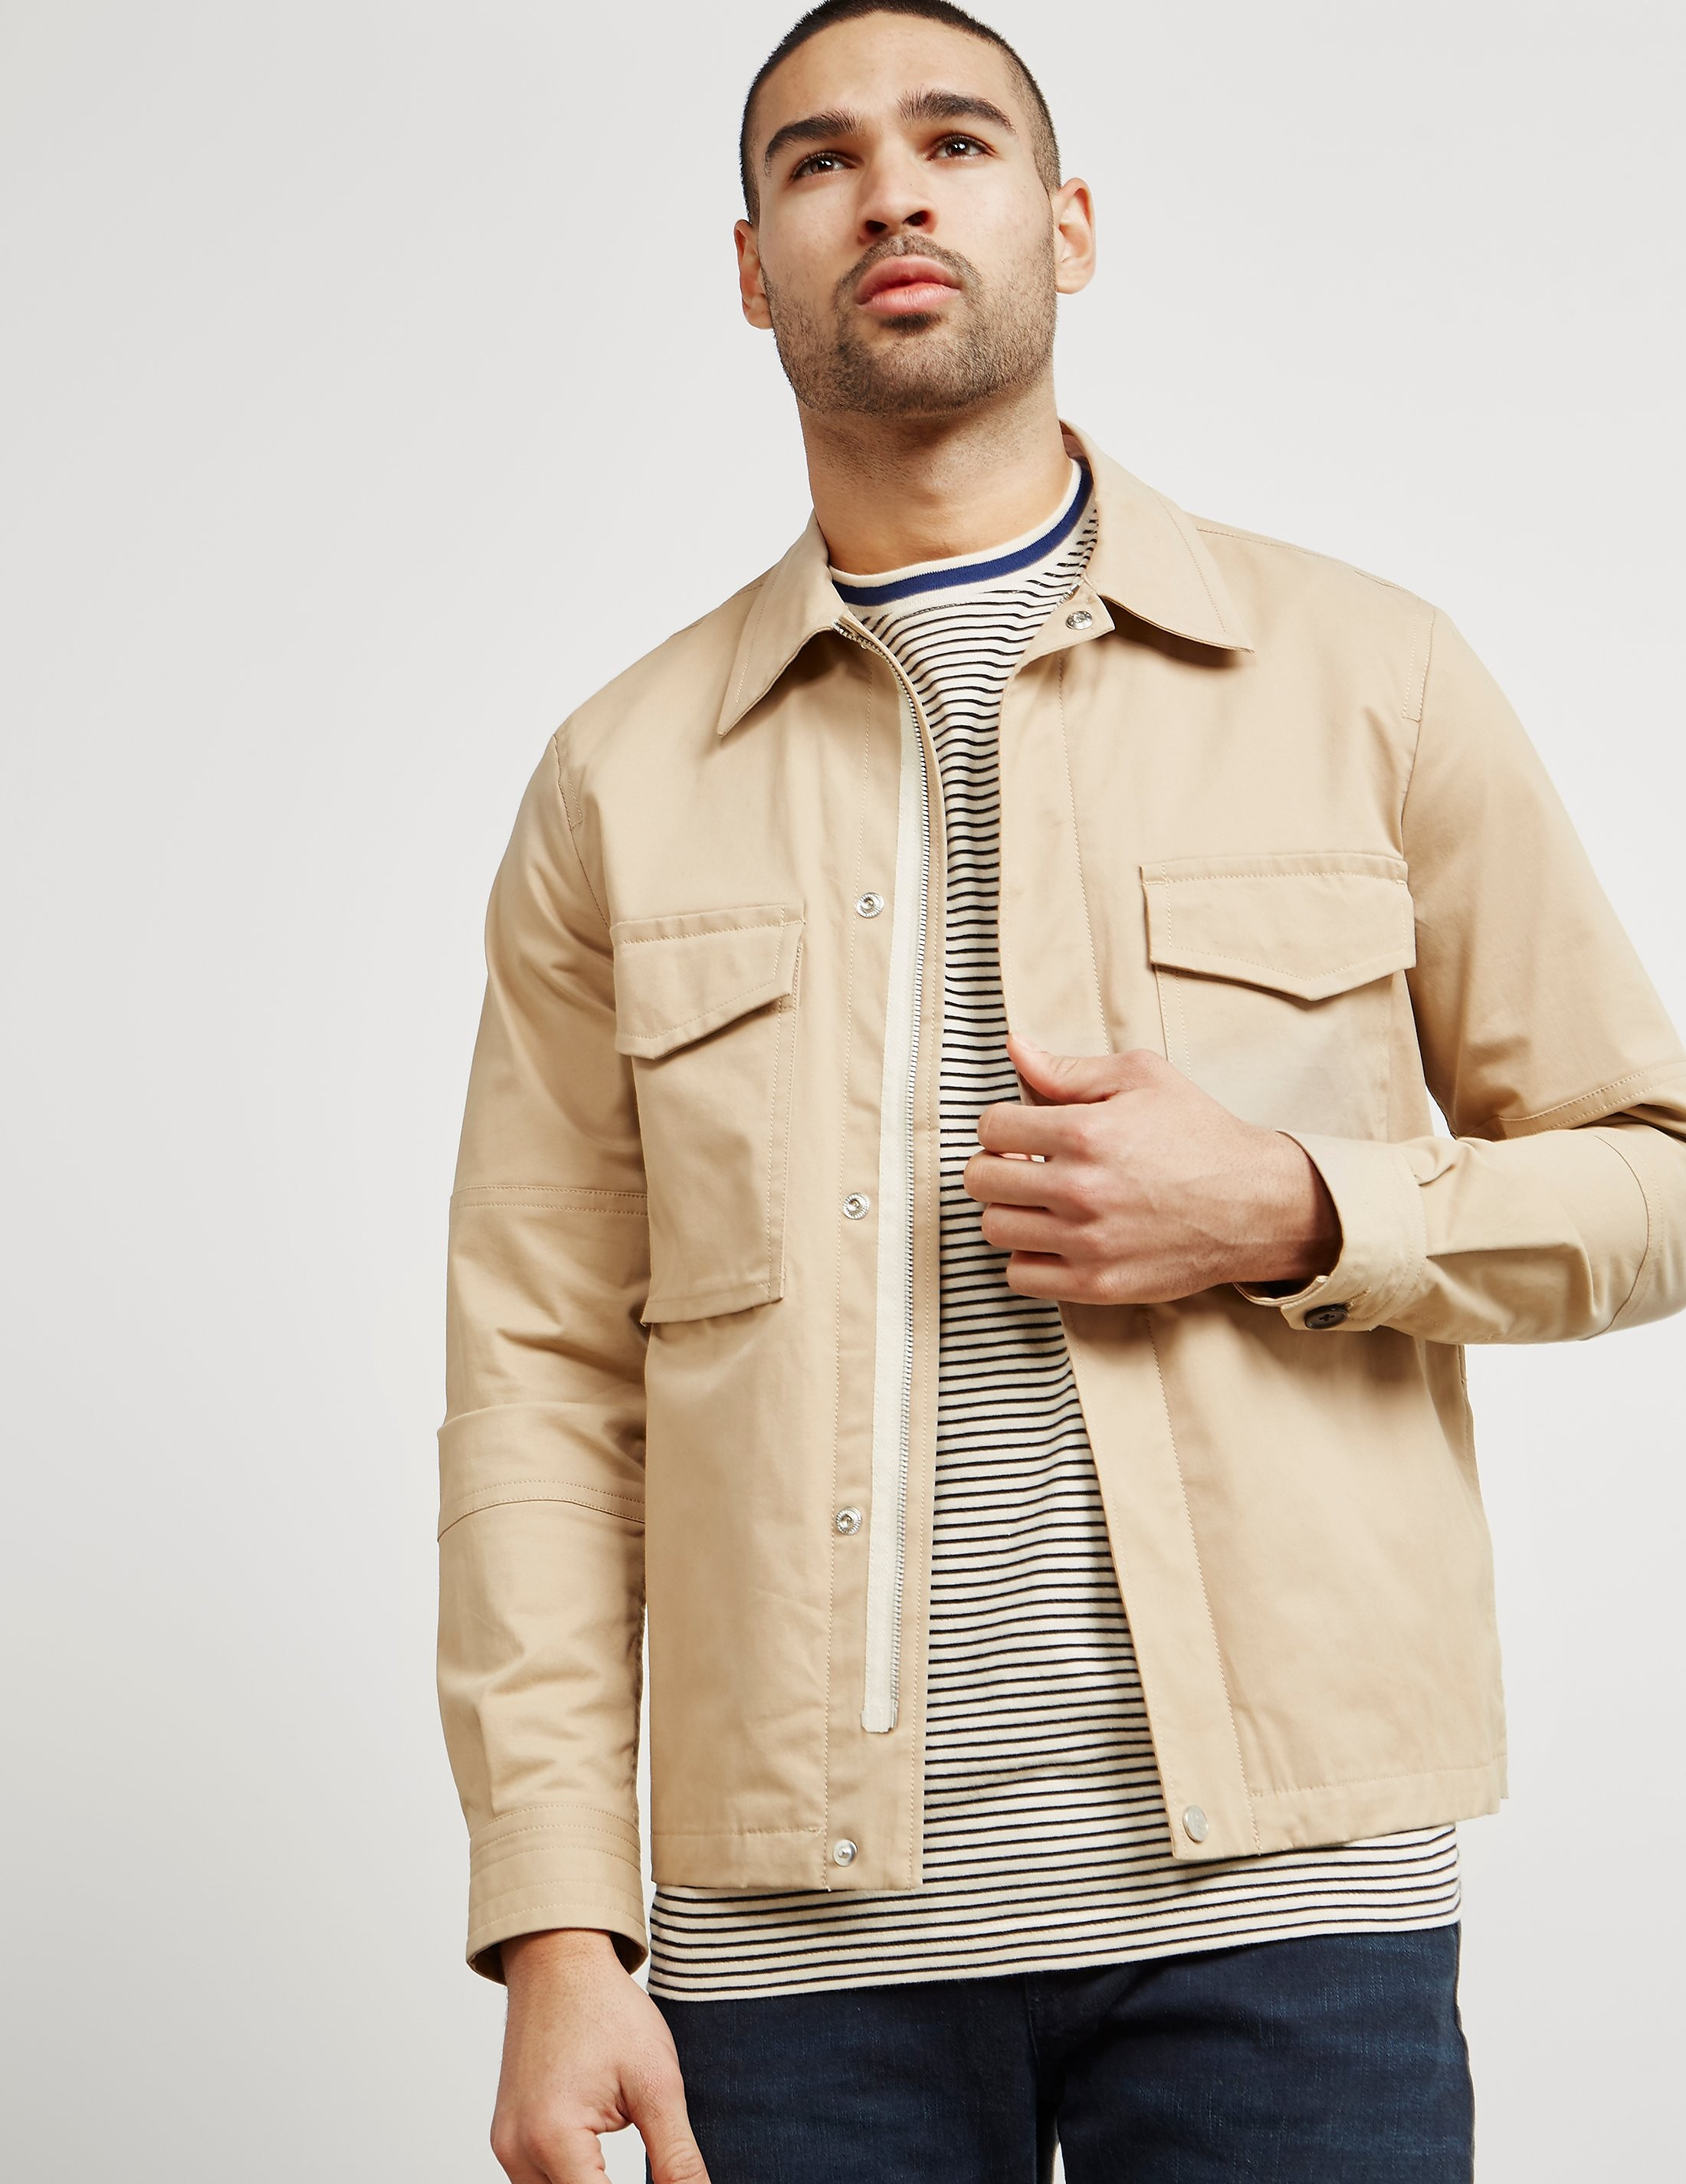 Paul Smith Military Lightweight Shirt Jacket